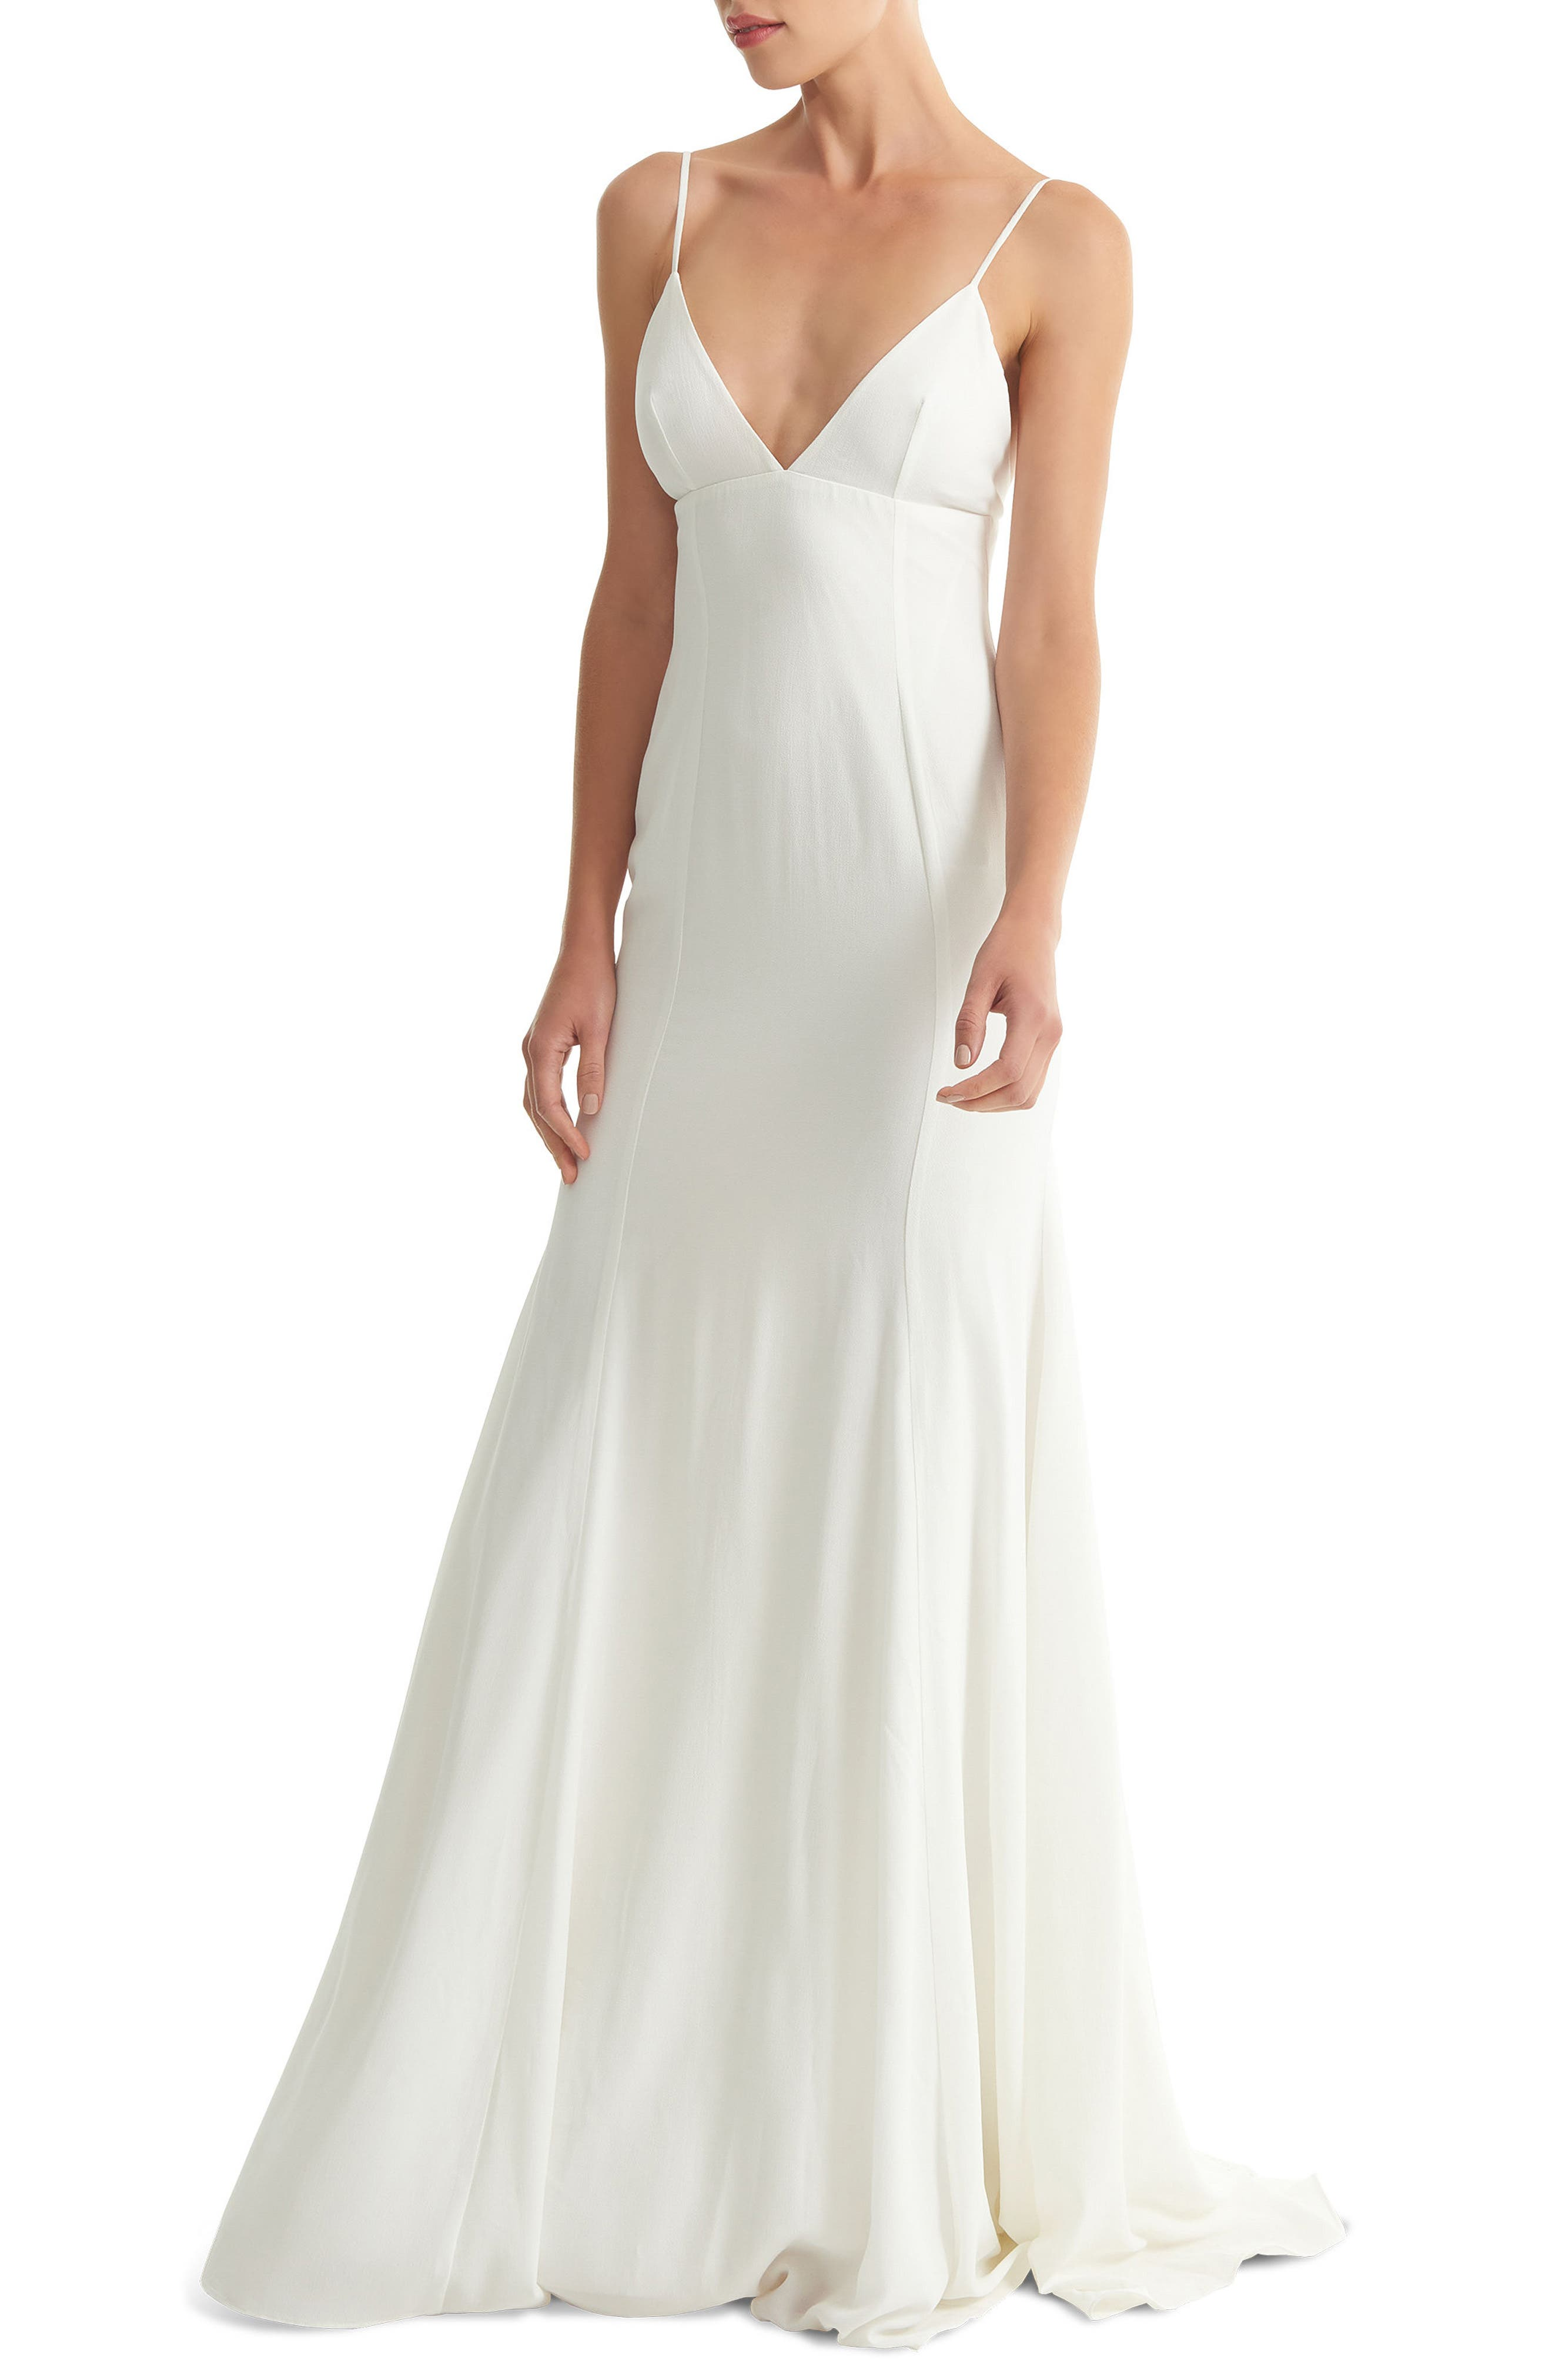 JOANNA AUGUST Crosby Crepe Mermaid Gown, Main, color, WHITE